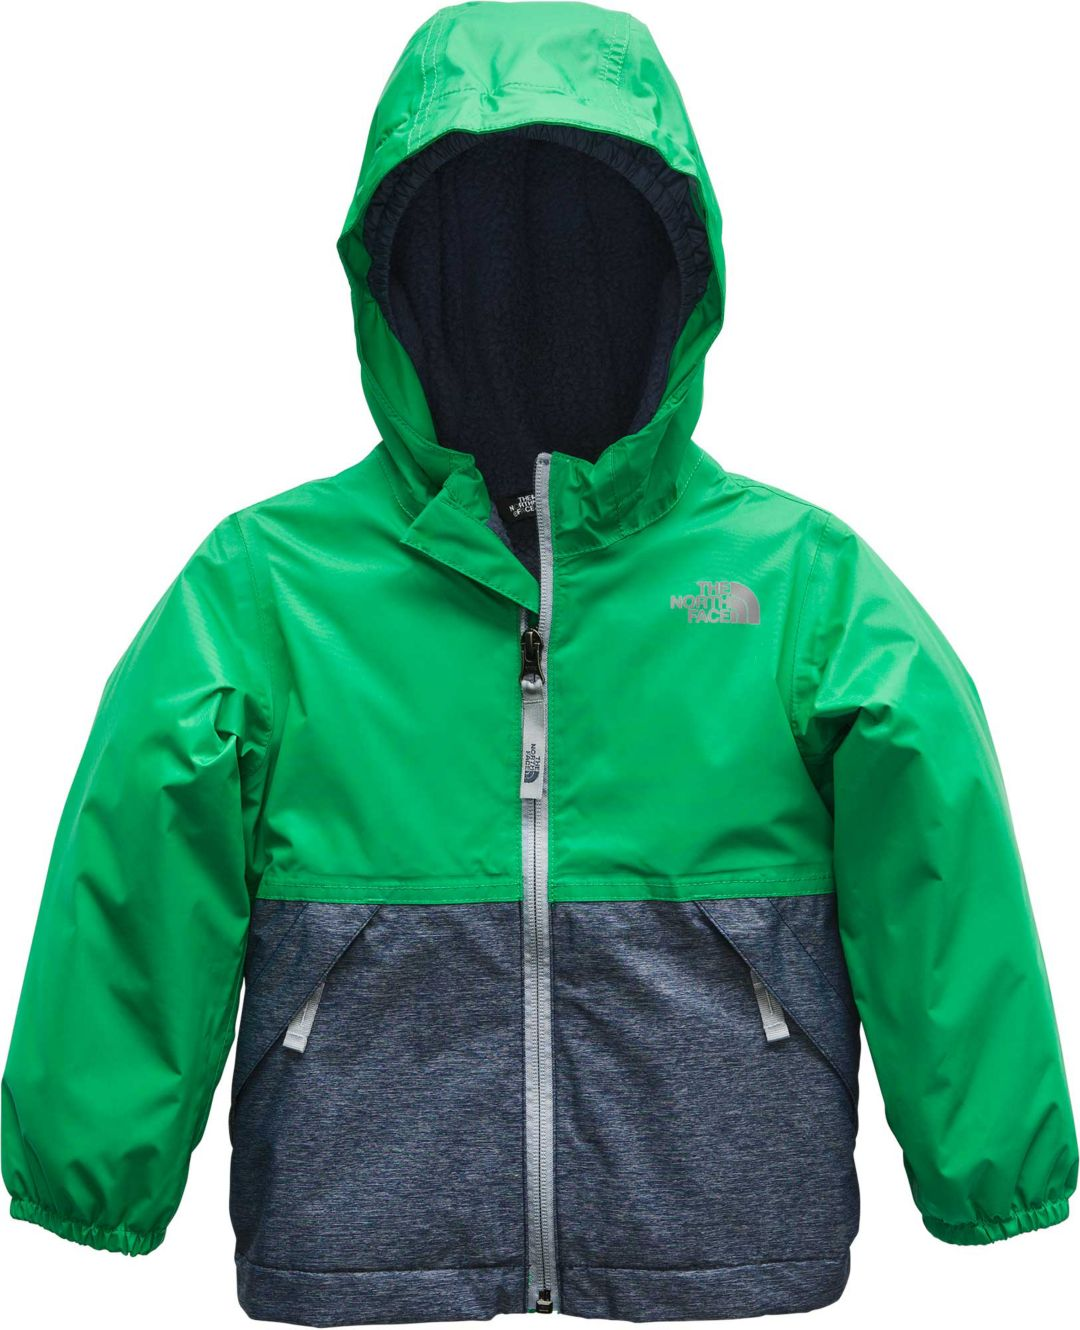 dae935ec9 The North Face Toddler Boys' Warm Storm Rain Jacket